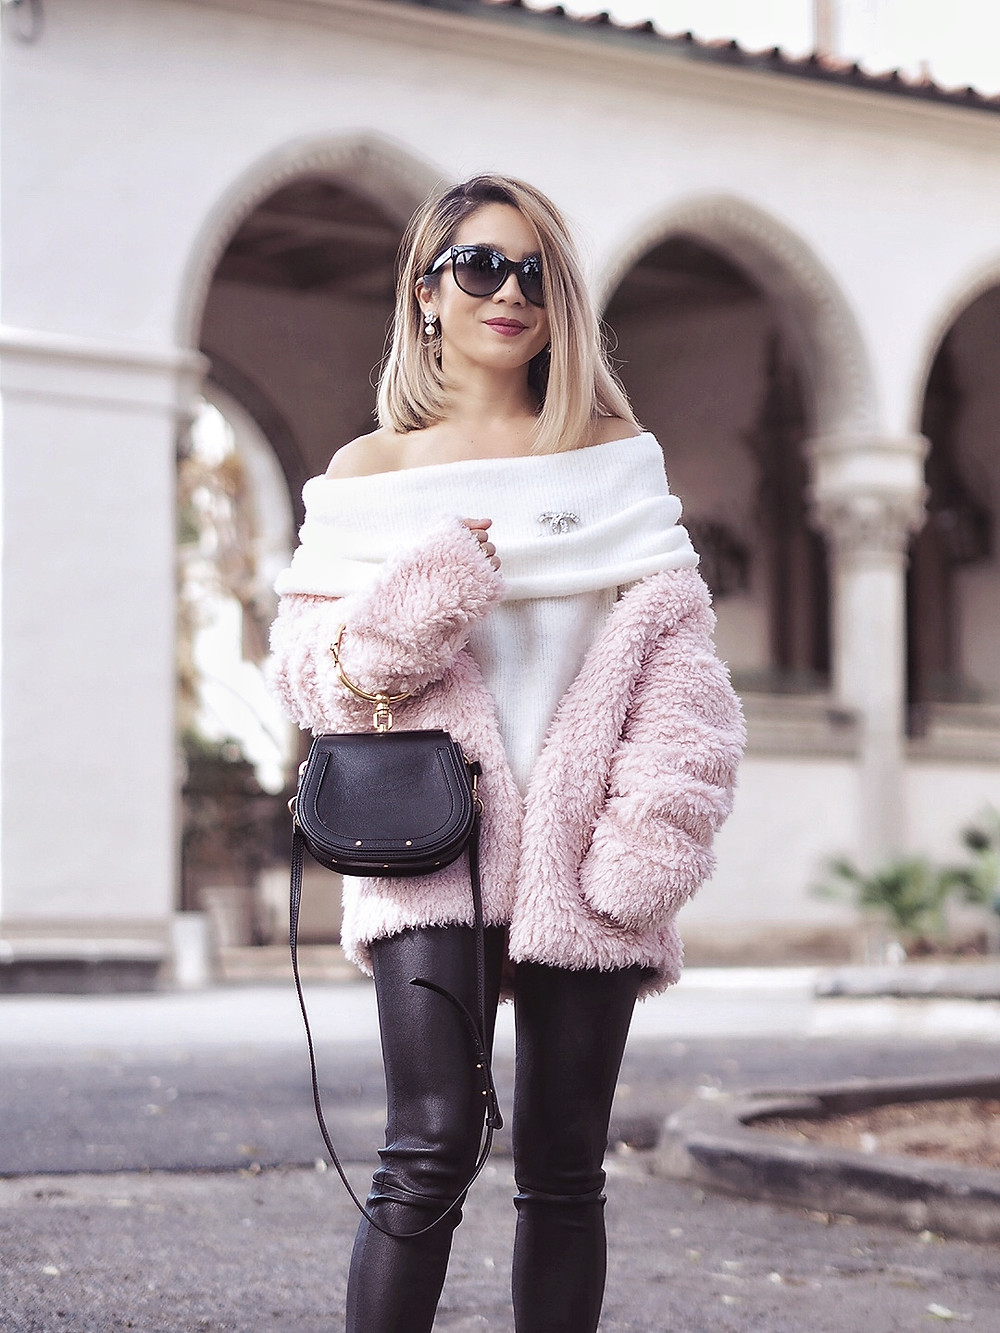 SheIn Faux Fur Jacket | Lam in Louboutins